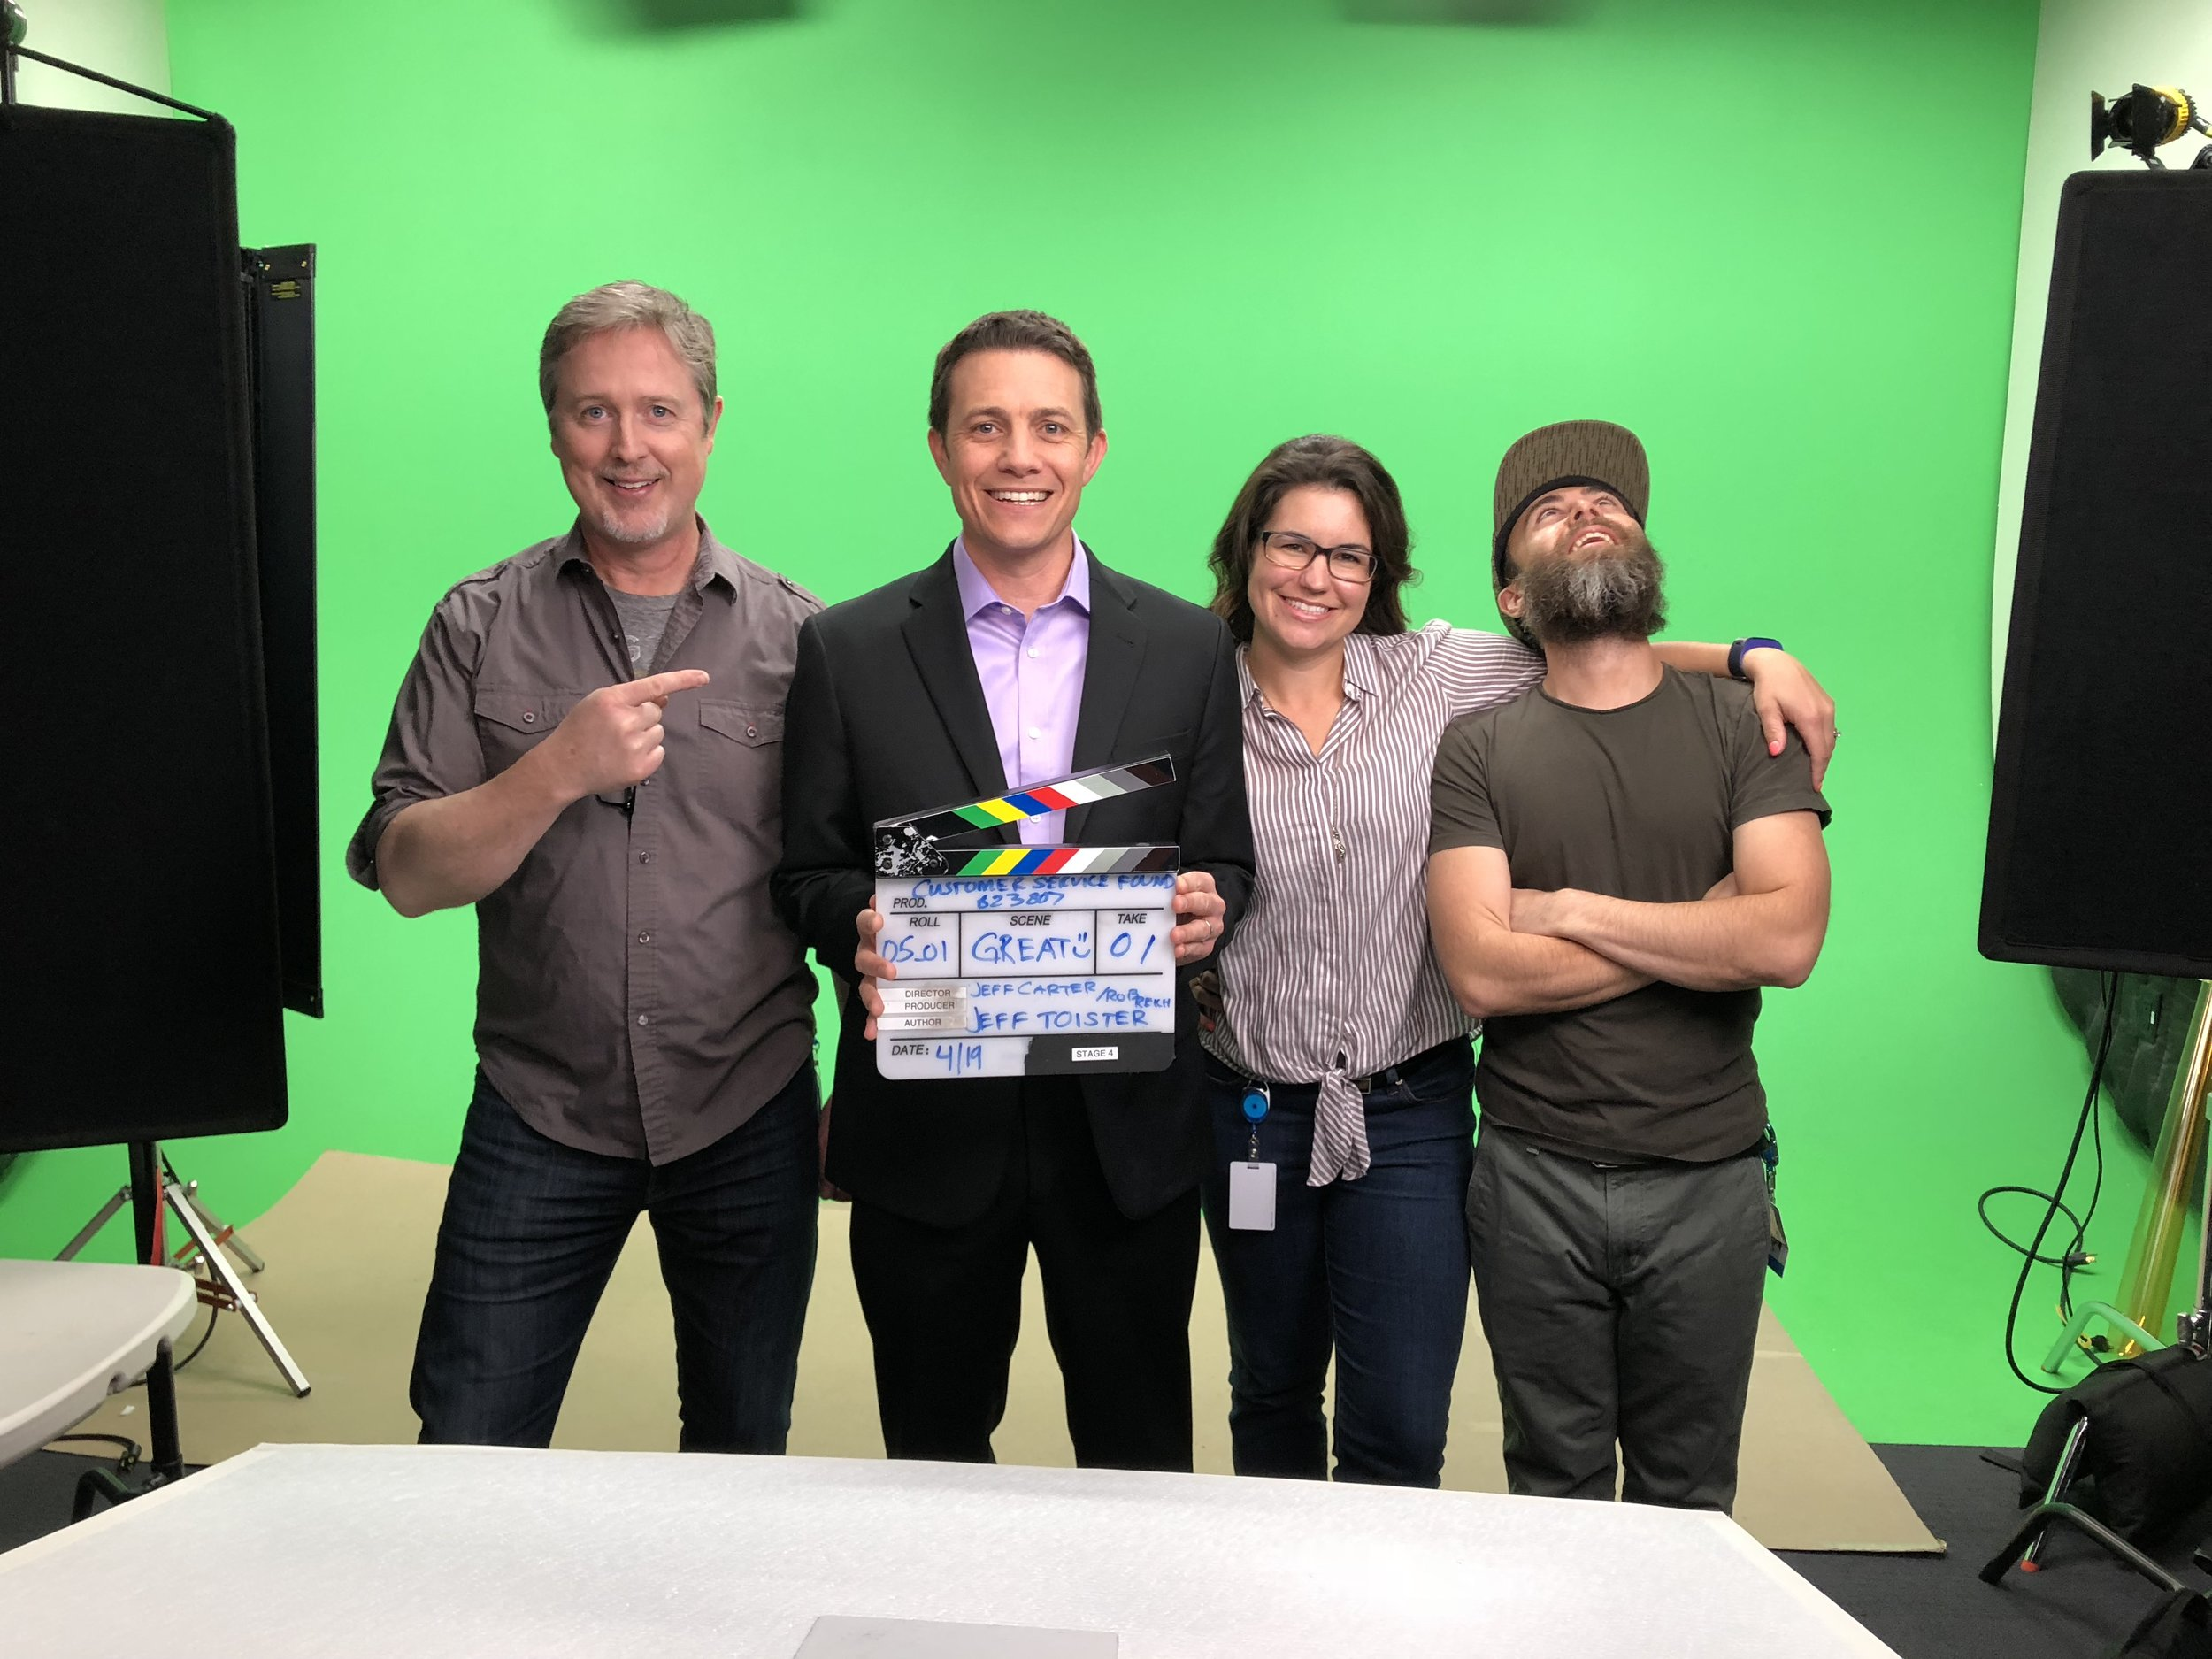 On the set filming Customer Service Foundations. From left to right: Jeff (Director), Jeff (me), Sam (Producer), and Rob (Production Lead).